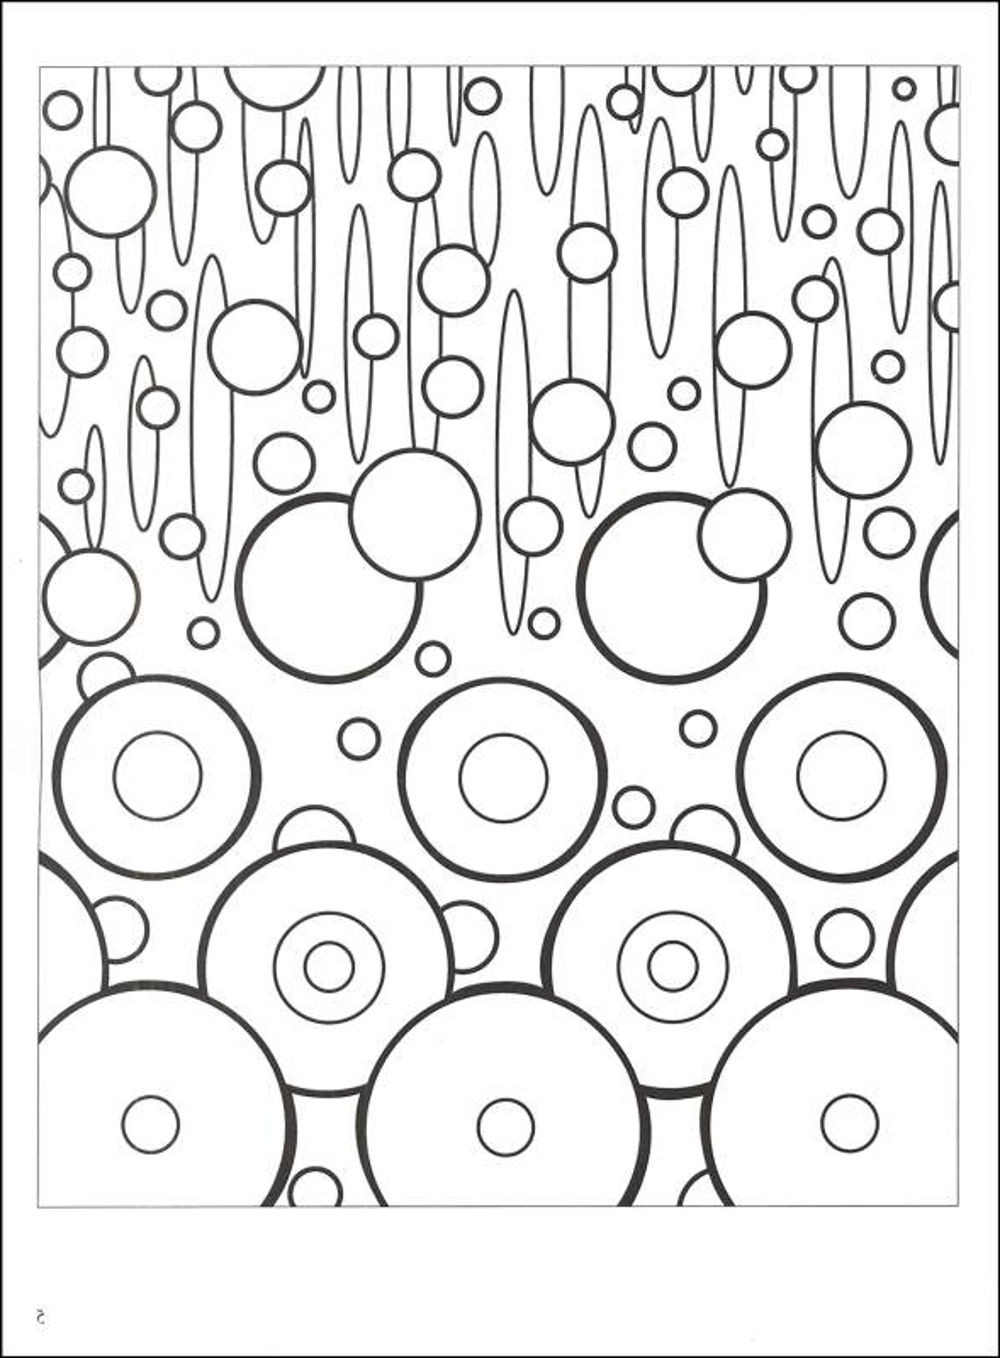 Online For Adults - Coloring Pages for Kids and for Adults